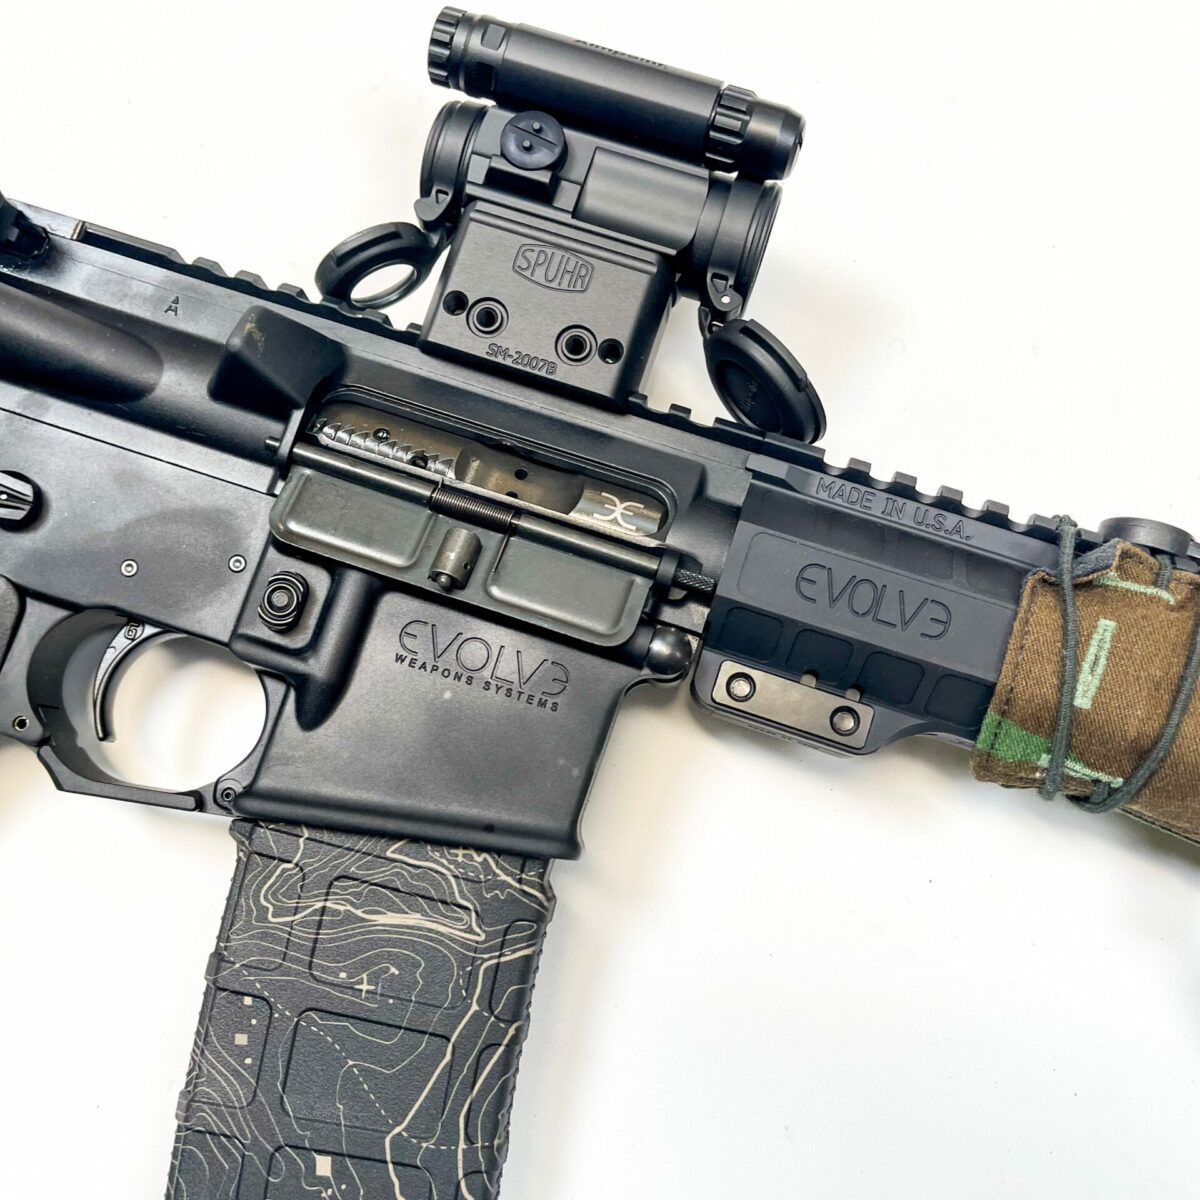 Evolve Weapons Systems - AR-15 An ARBuildJunkie Q&A with Adam Tarr